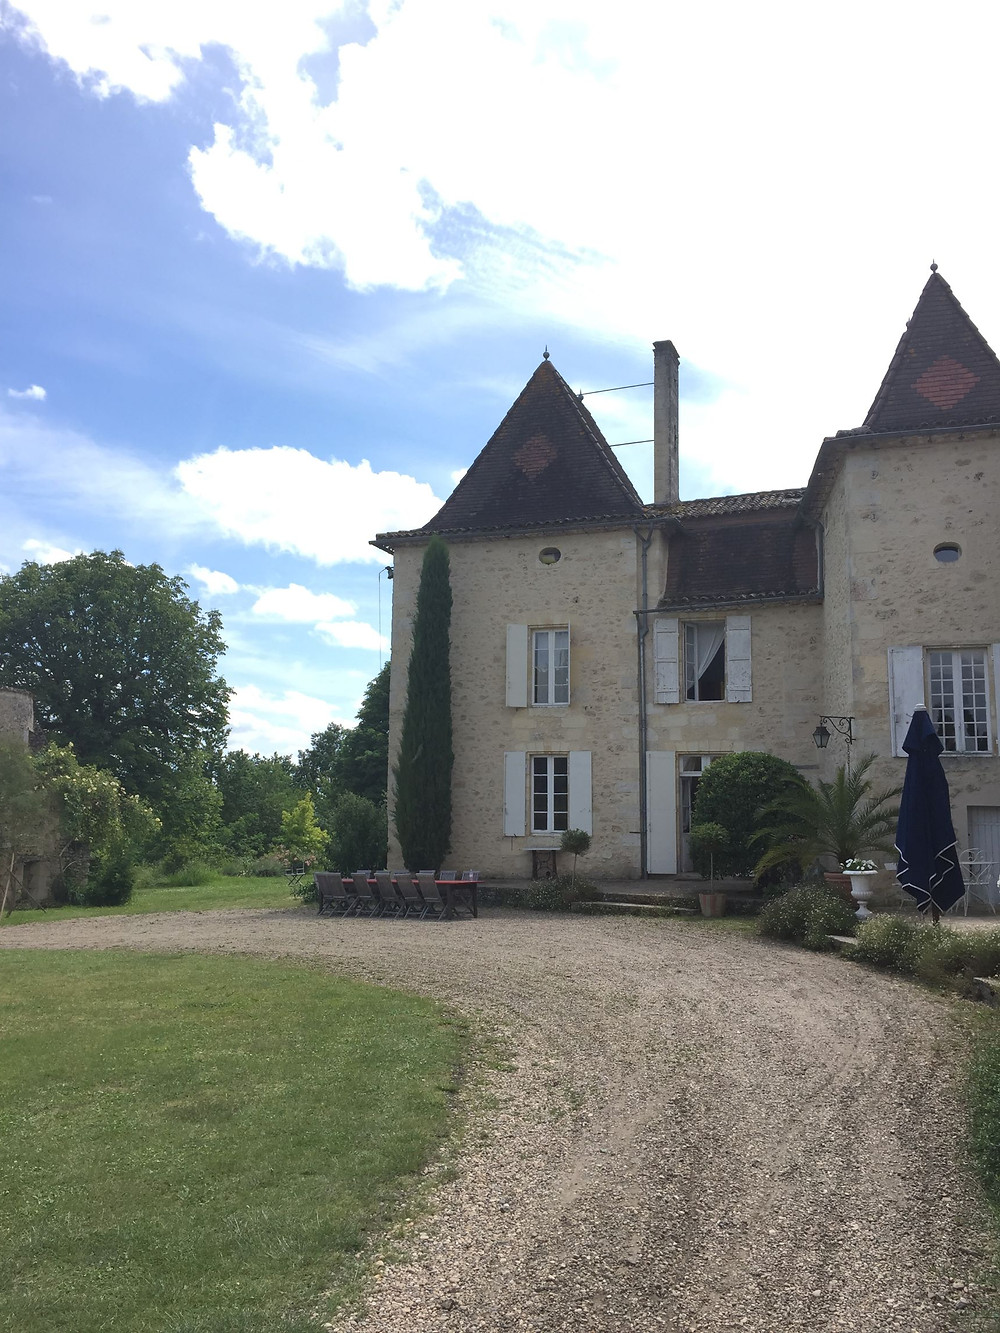 This 17th century chateau is currently used as a residence